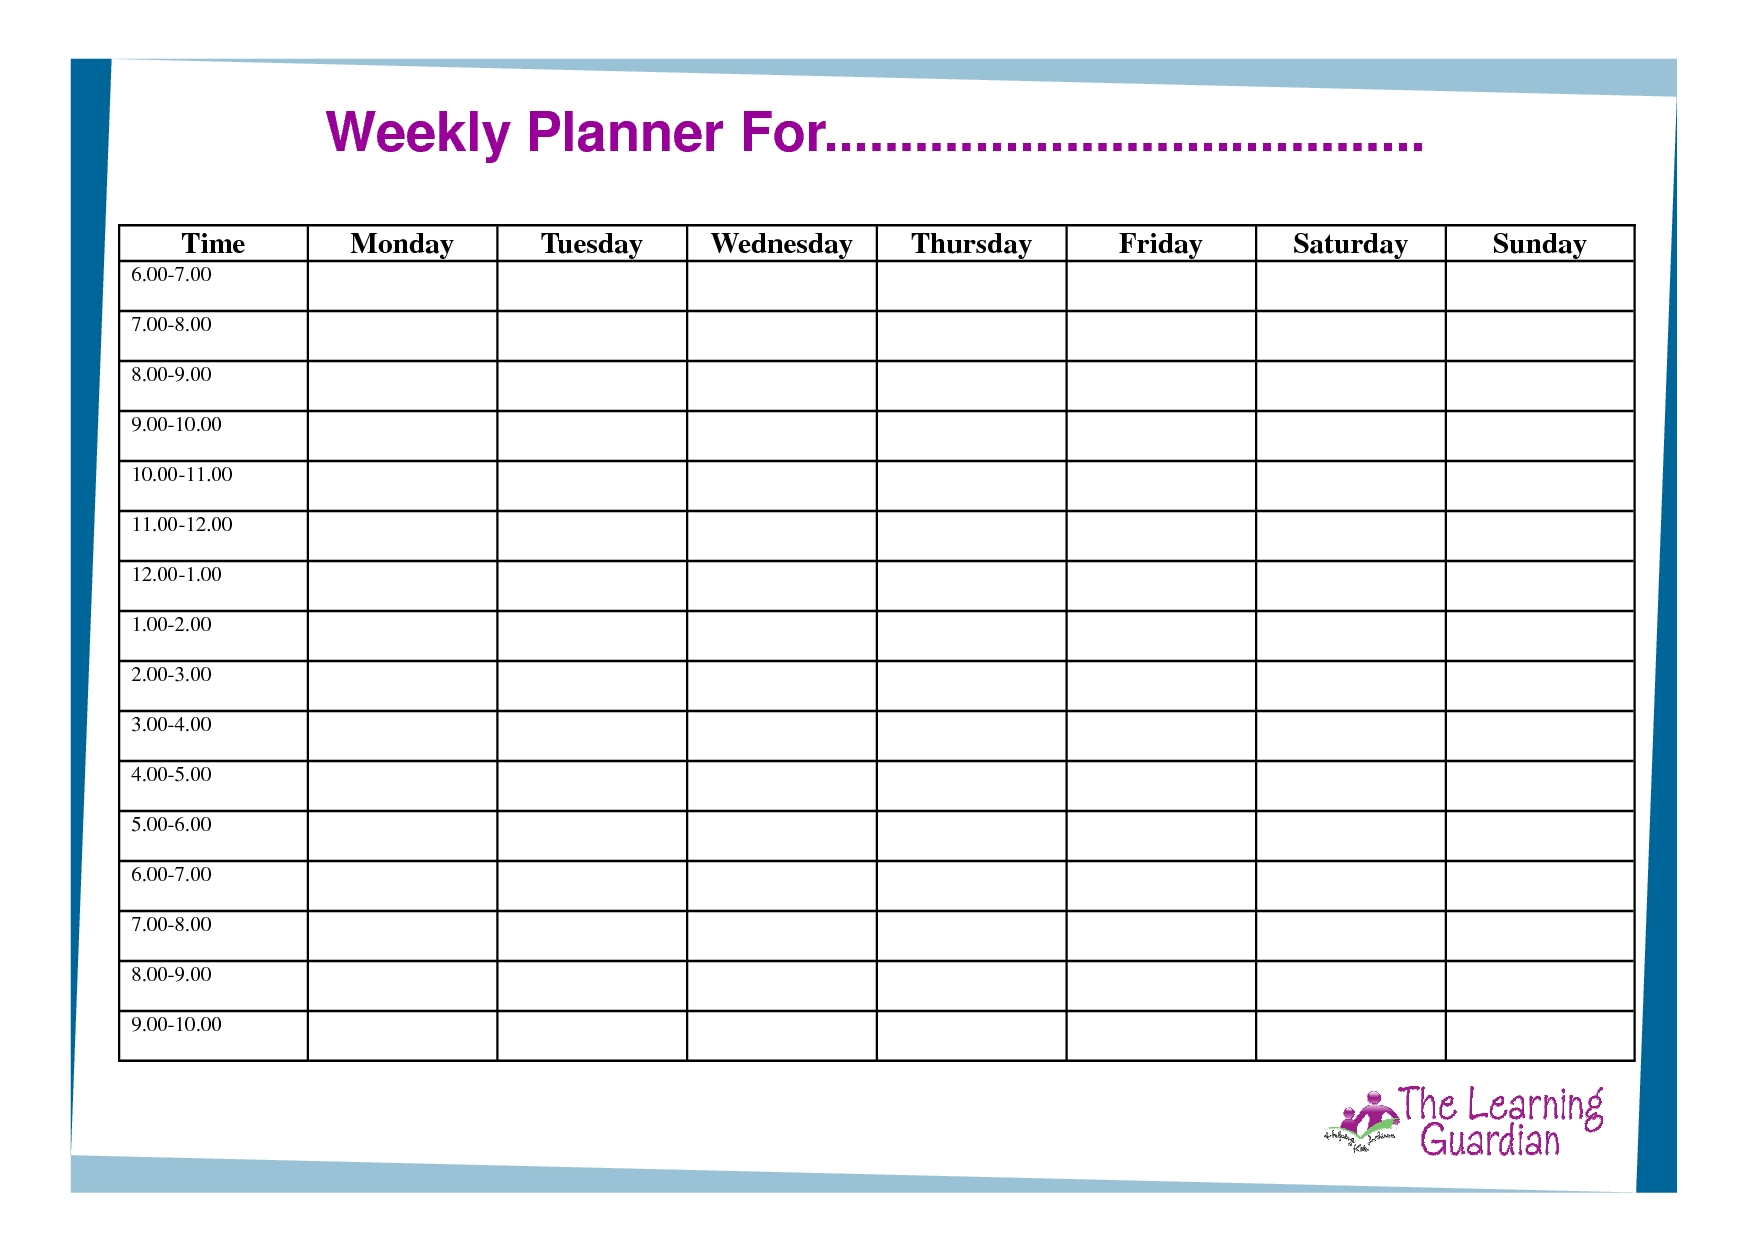 Free Printable Weekly Calendar Templates | Weekly Planner  Monday To Sunday Calendar Template